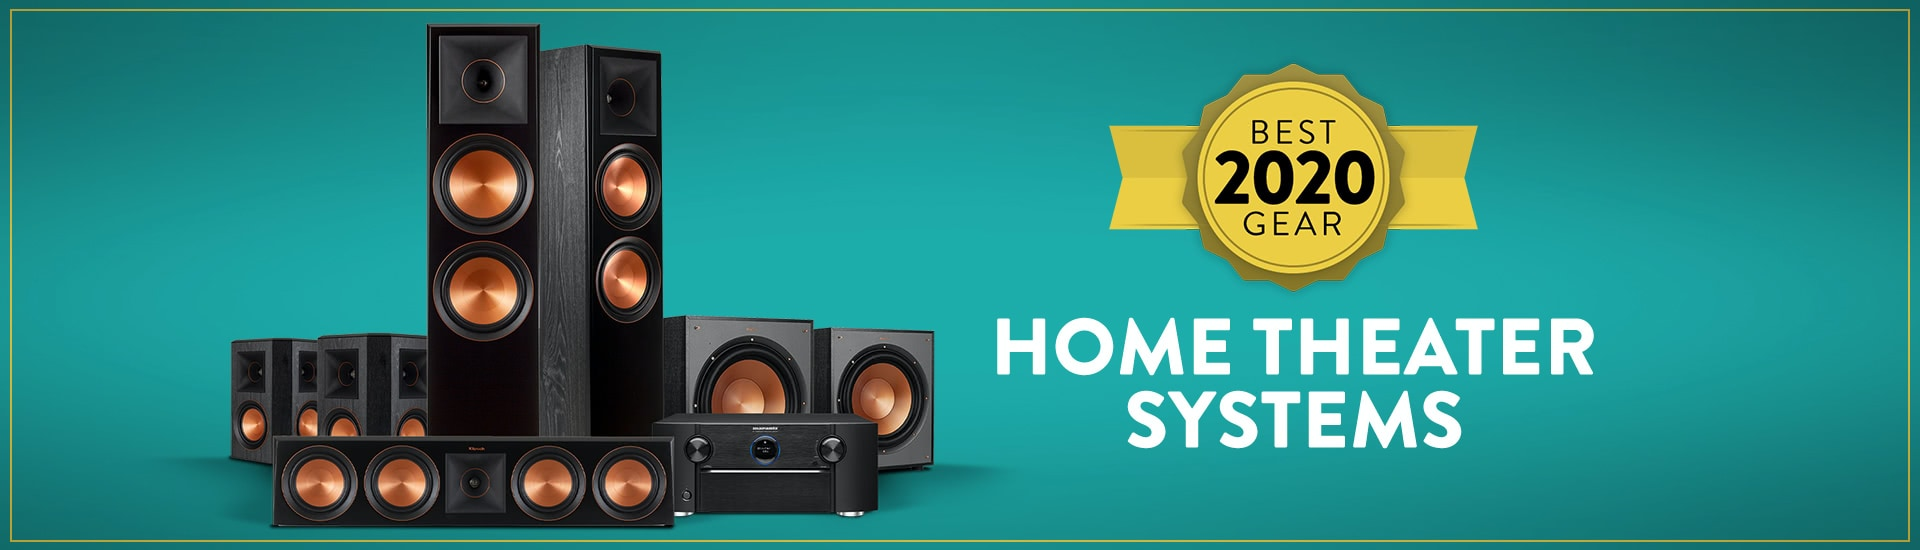 20191205 2020 best home theater systems blog header